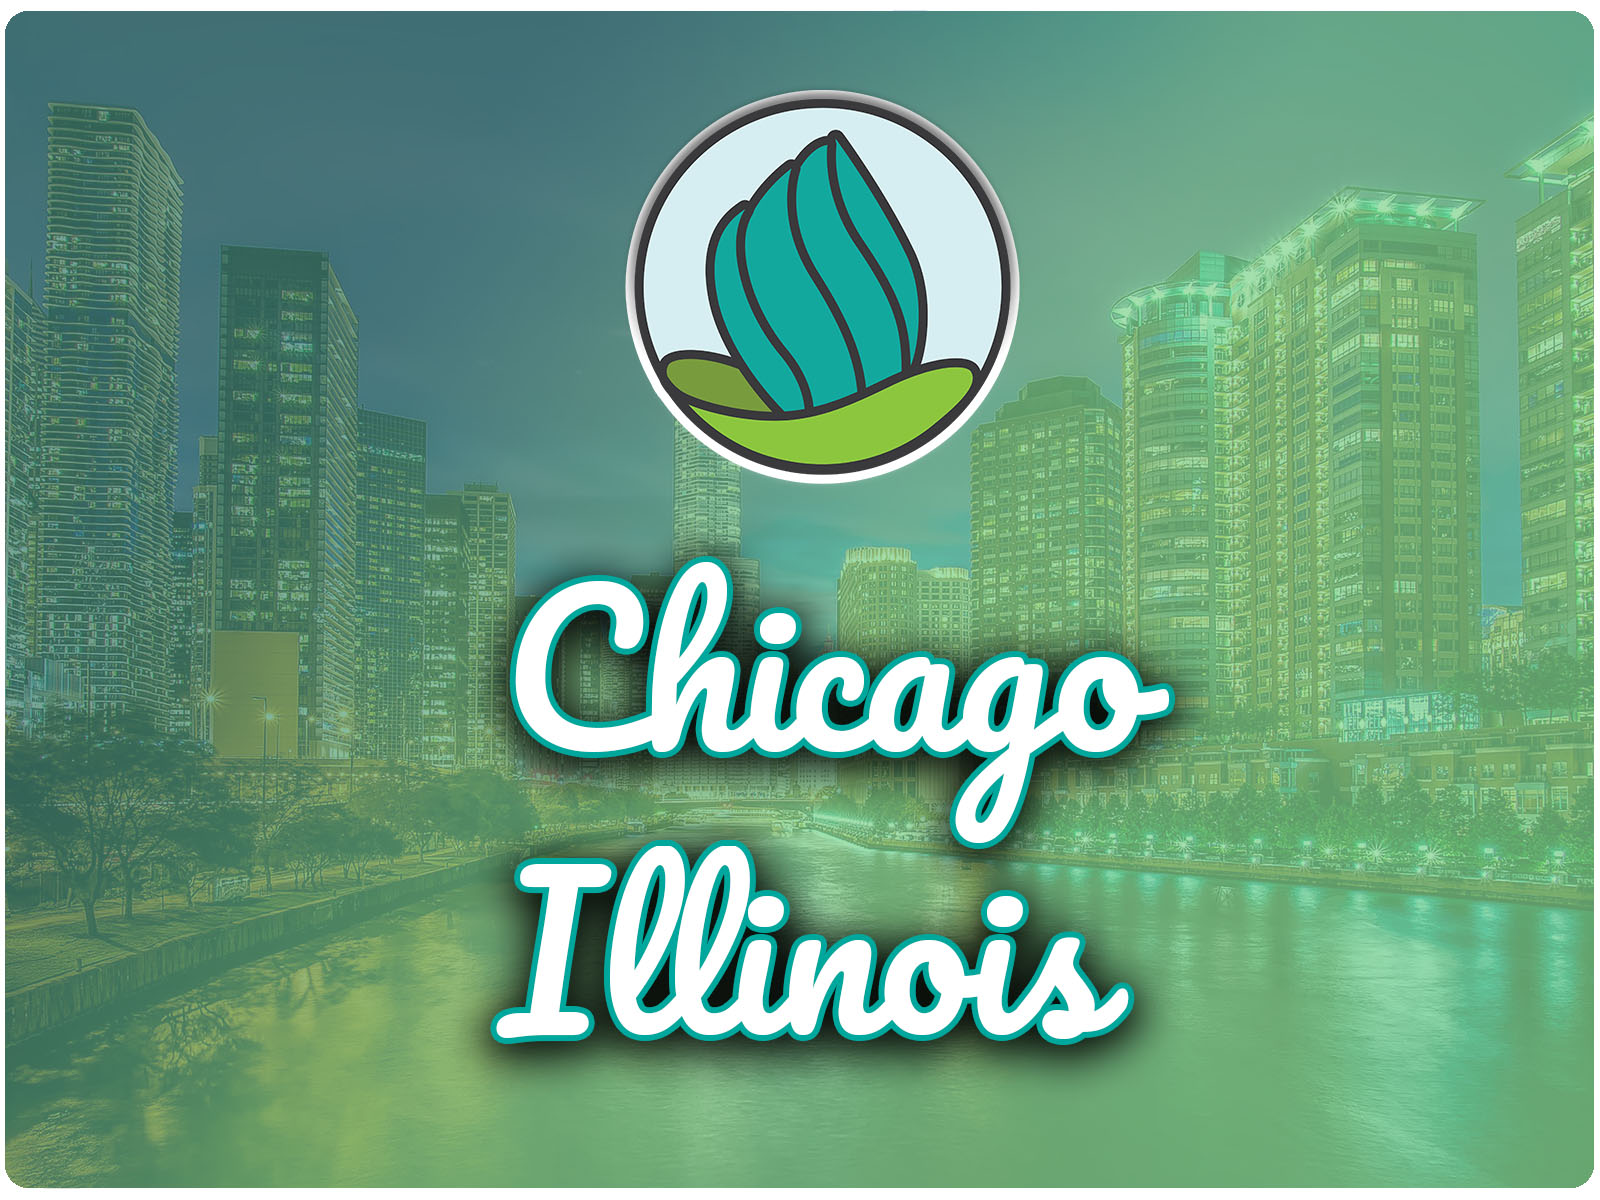 Image of tall buildings and a blue-green gradient overlay, and the words 'Chicago, Illinois' in cursive and NDC logo on top